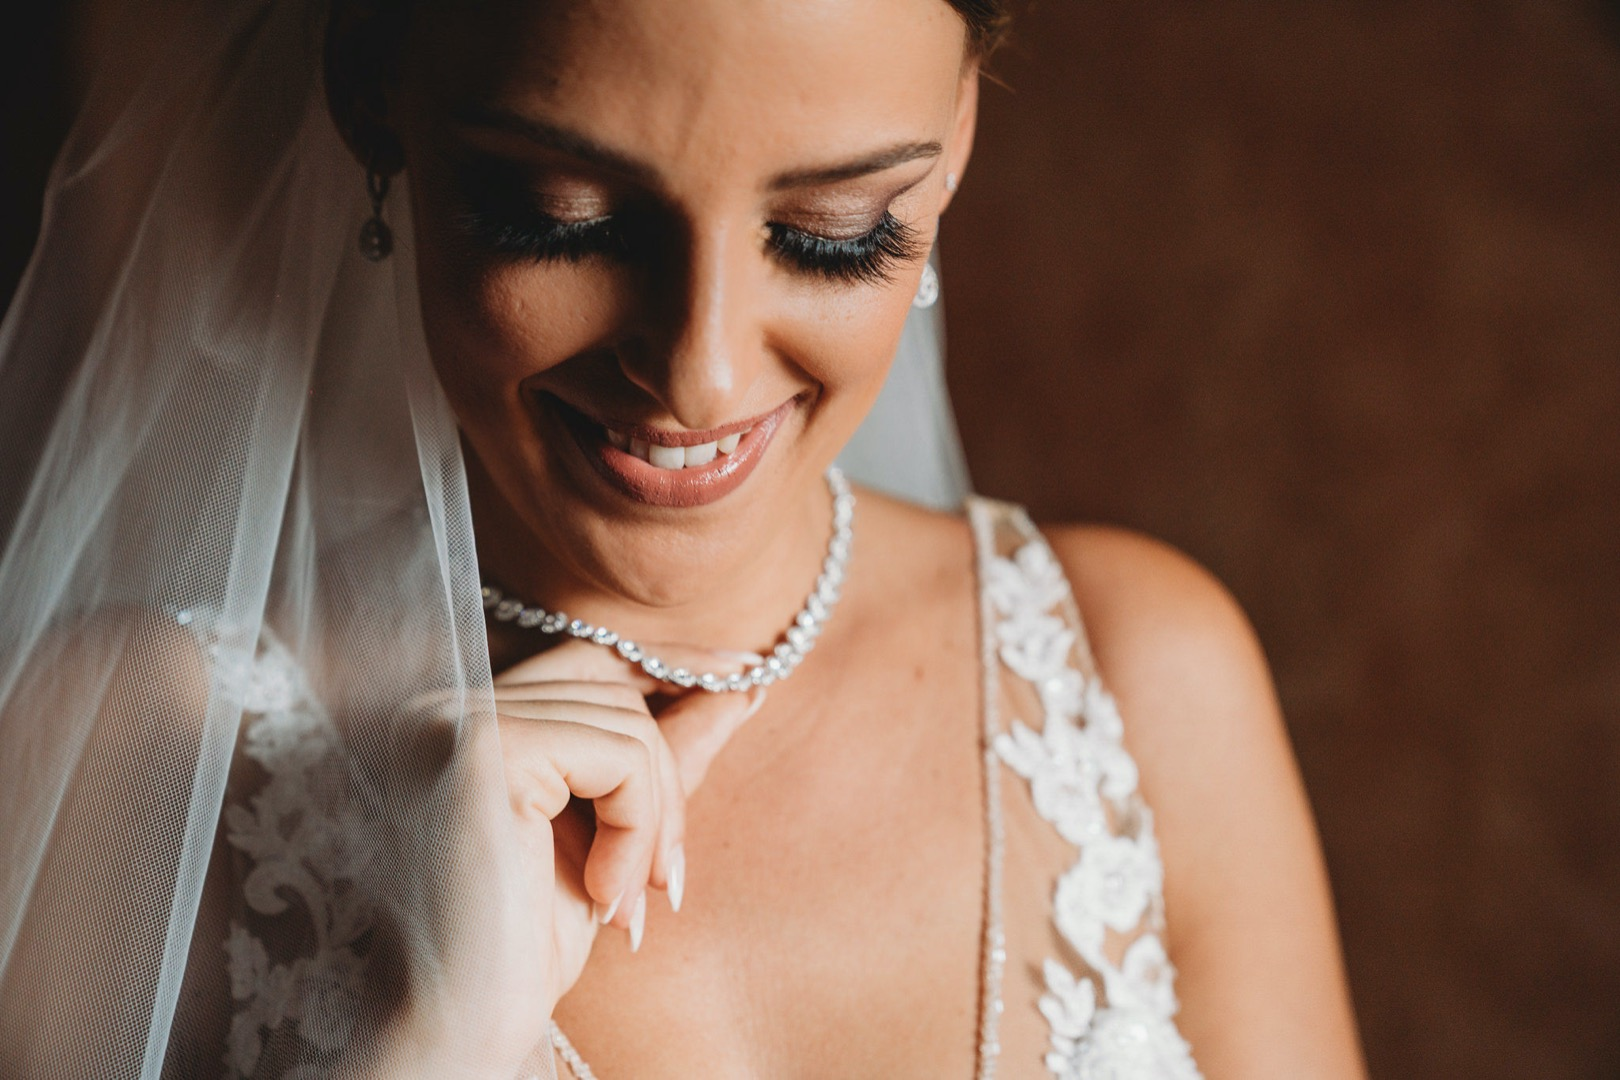 maquillage faux cils mariage